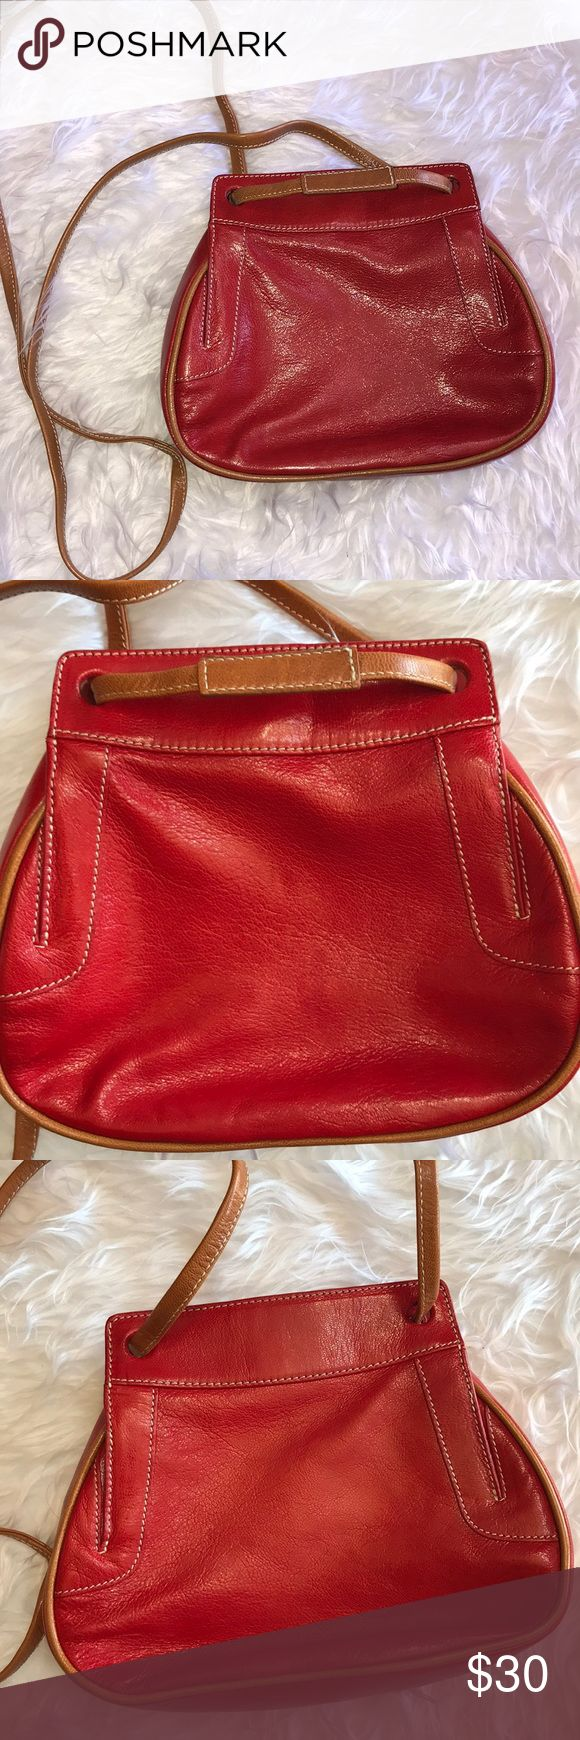 TUSK Red Crossbody Bag In excellent preowned condition TUSK Bags Crossbody Bags